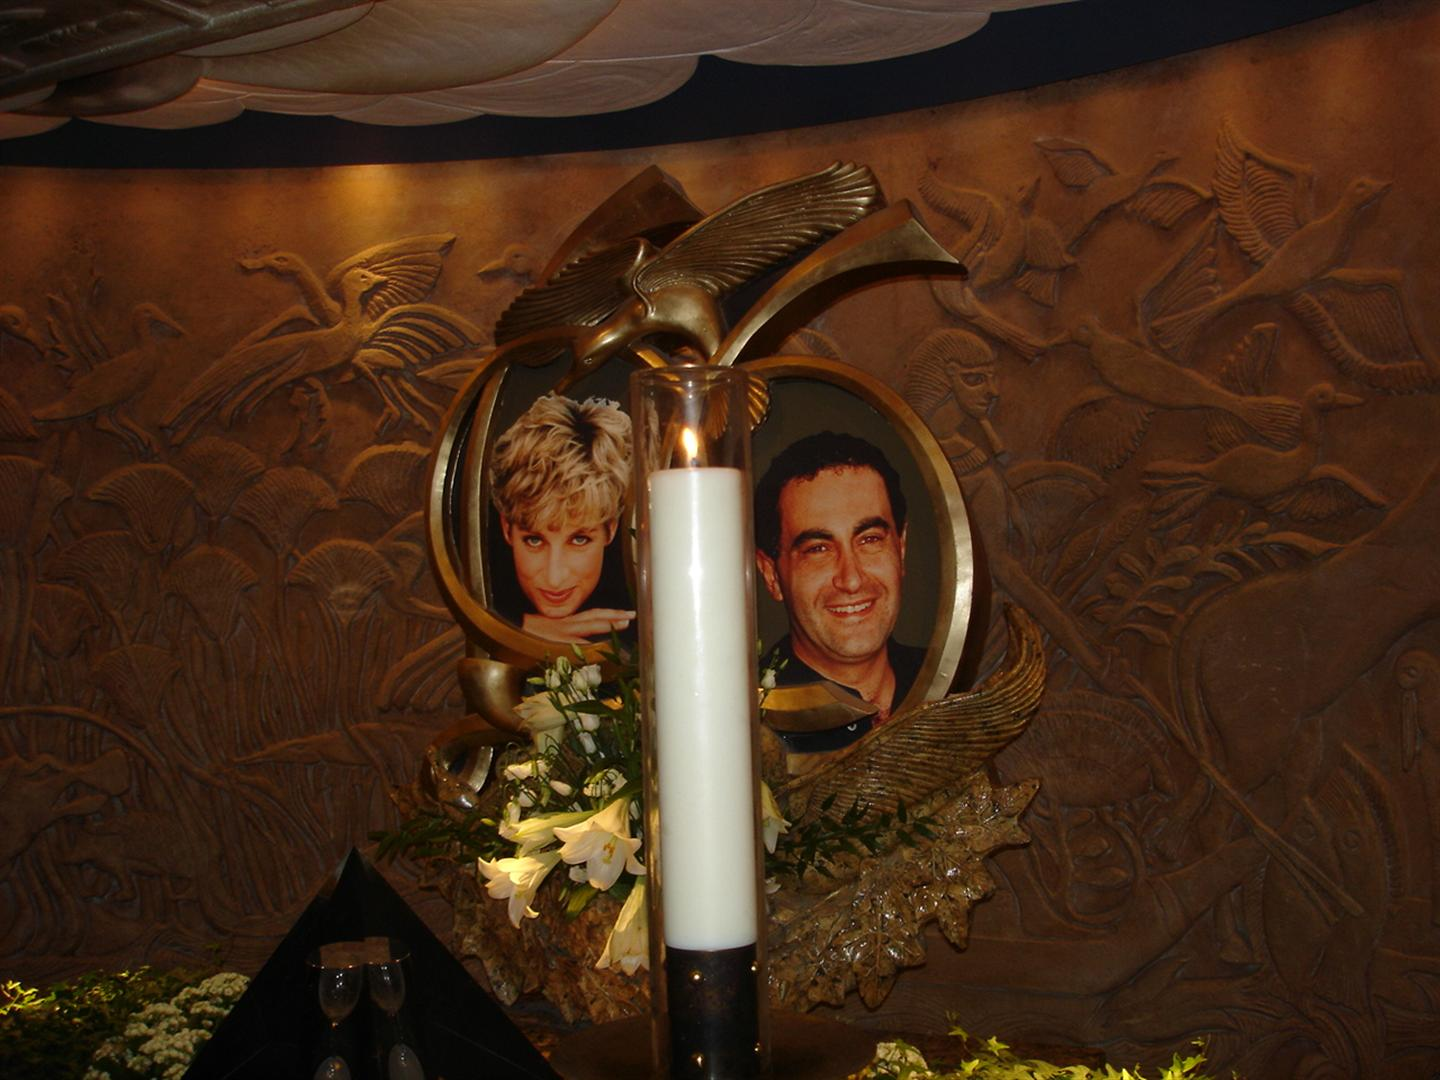 Day 6 Pic 11 - Diana & Dodi Memorial @ Harrods